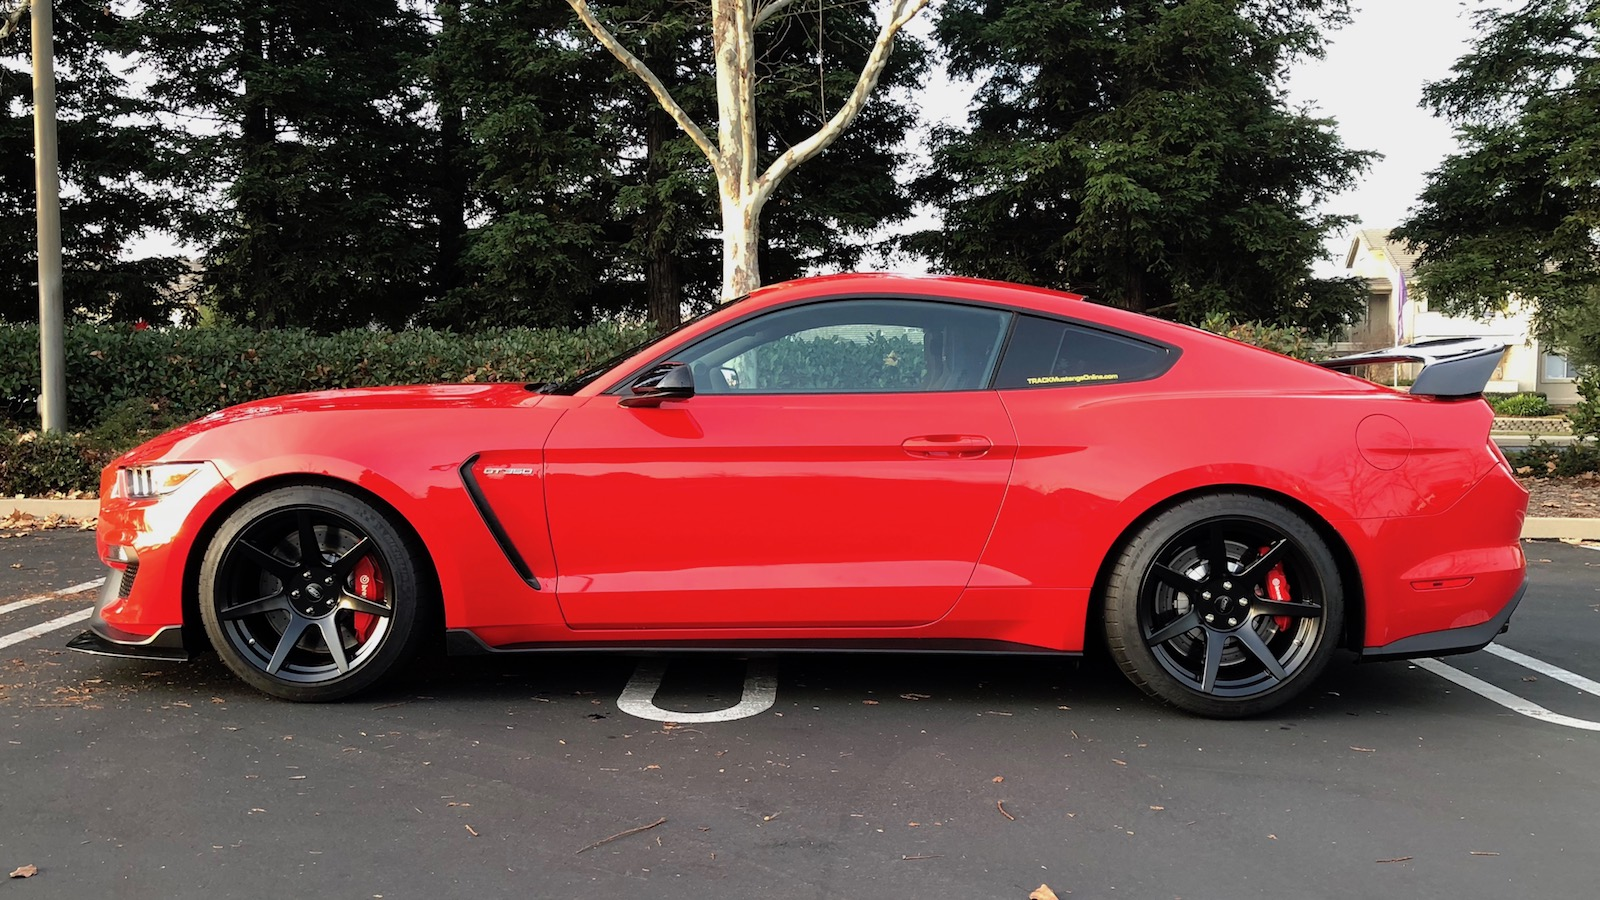 2016 Gt350 Track Pack With Cf R Look Wing And Splitter